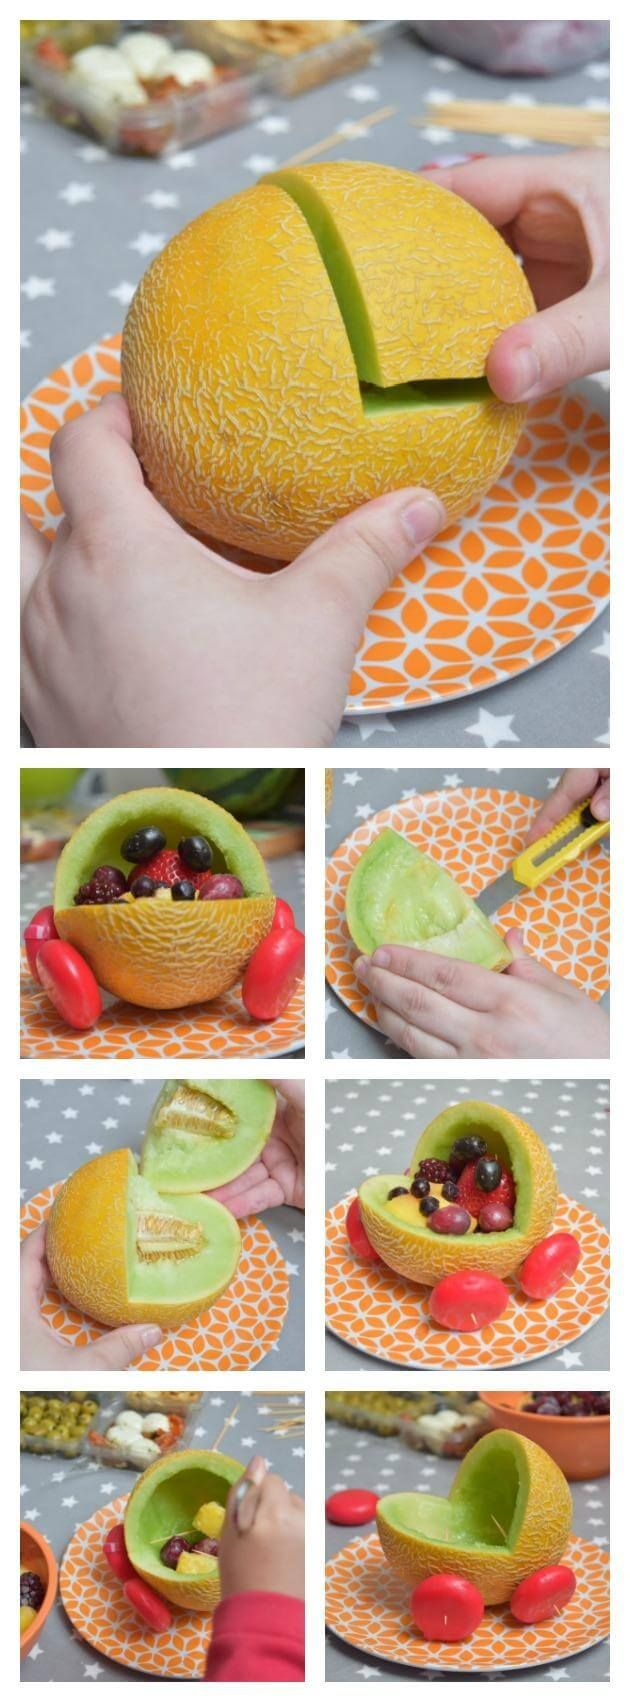 A few years ago I went to a fantastic baby shower and saw a great idea where a baby carriage was made from a Water Melon. Post on How to carve out and make a Melon carving.